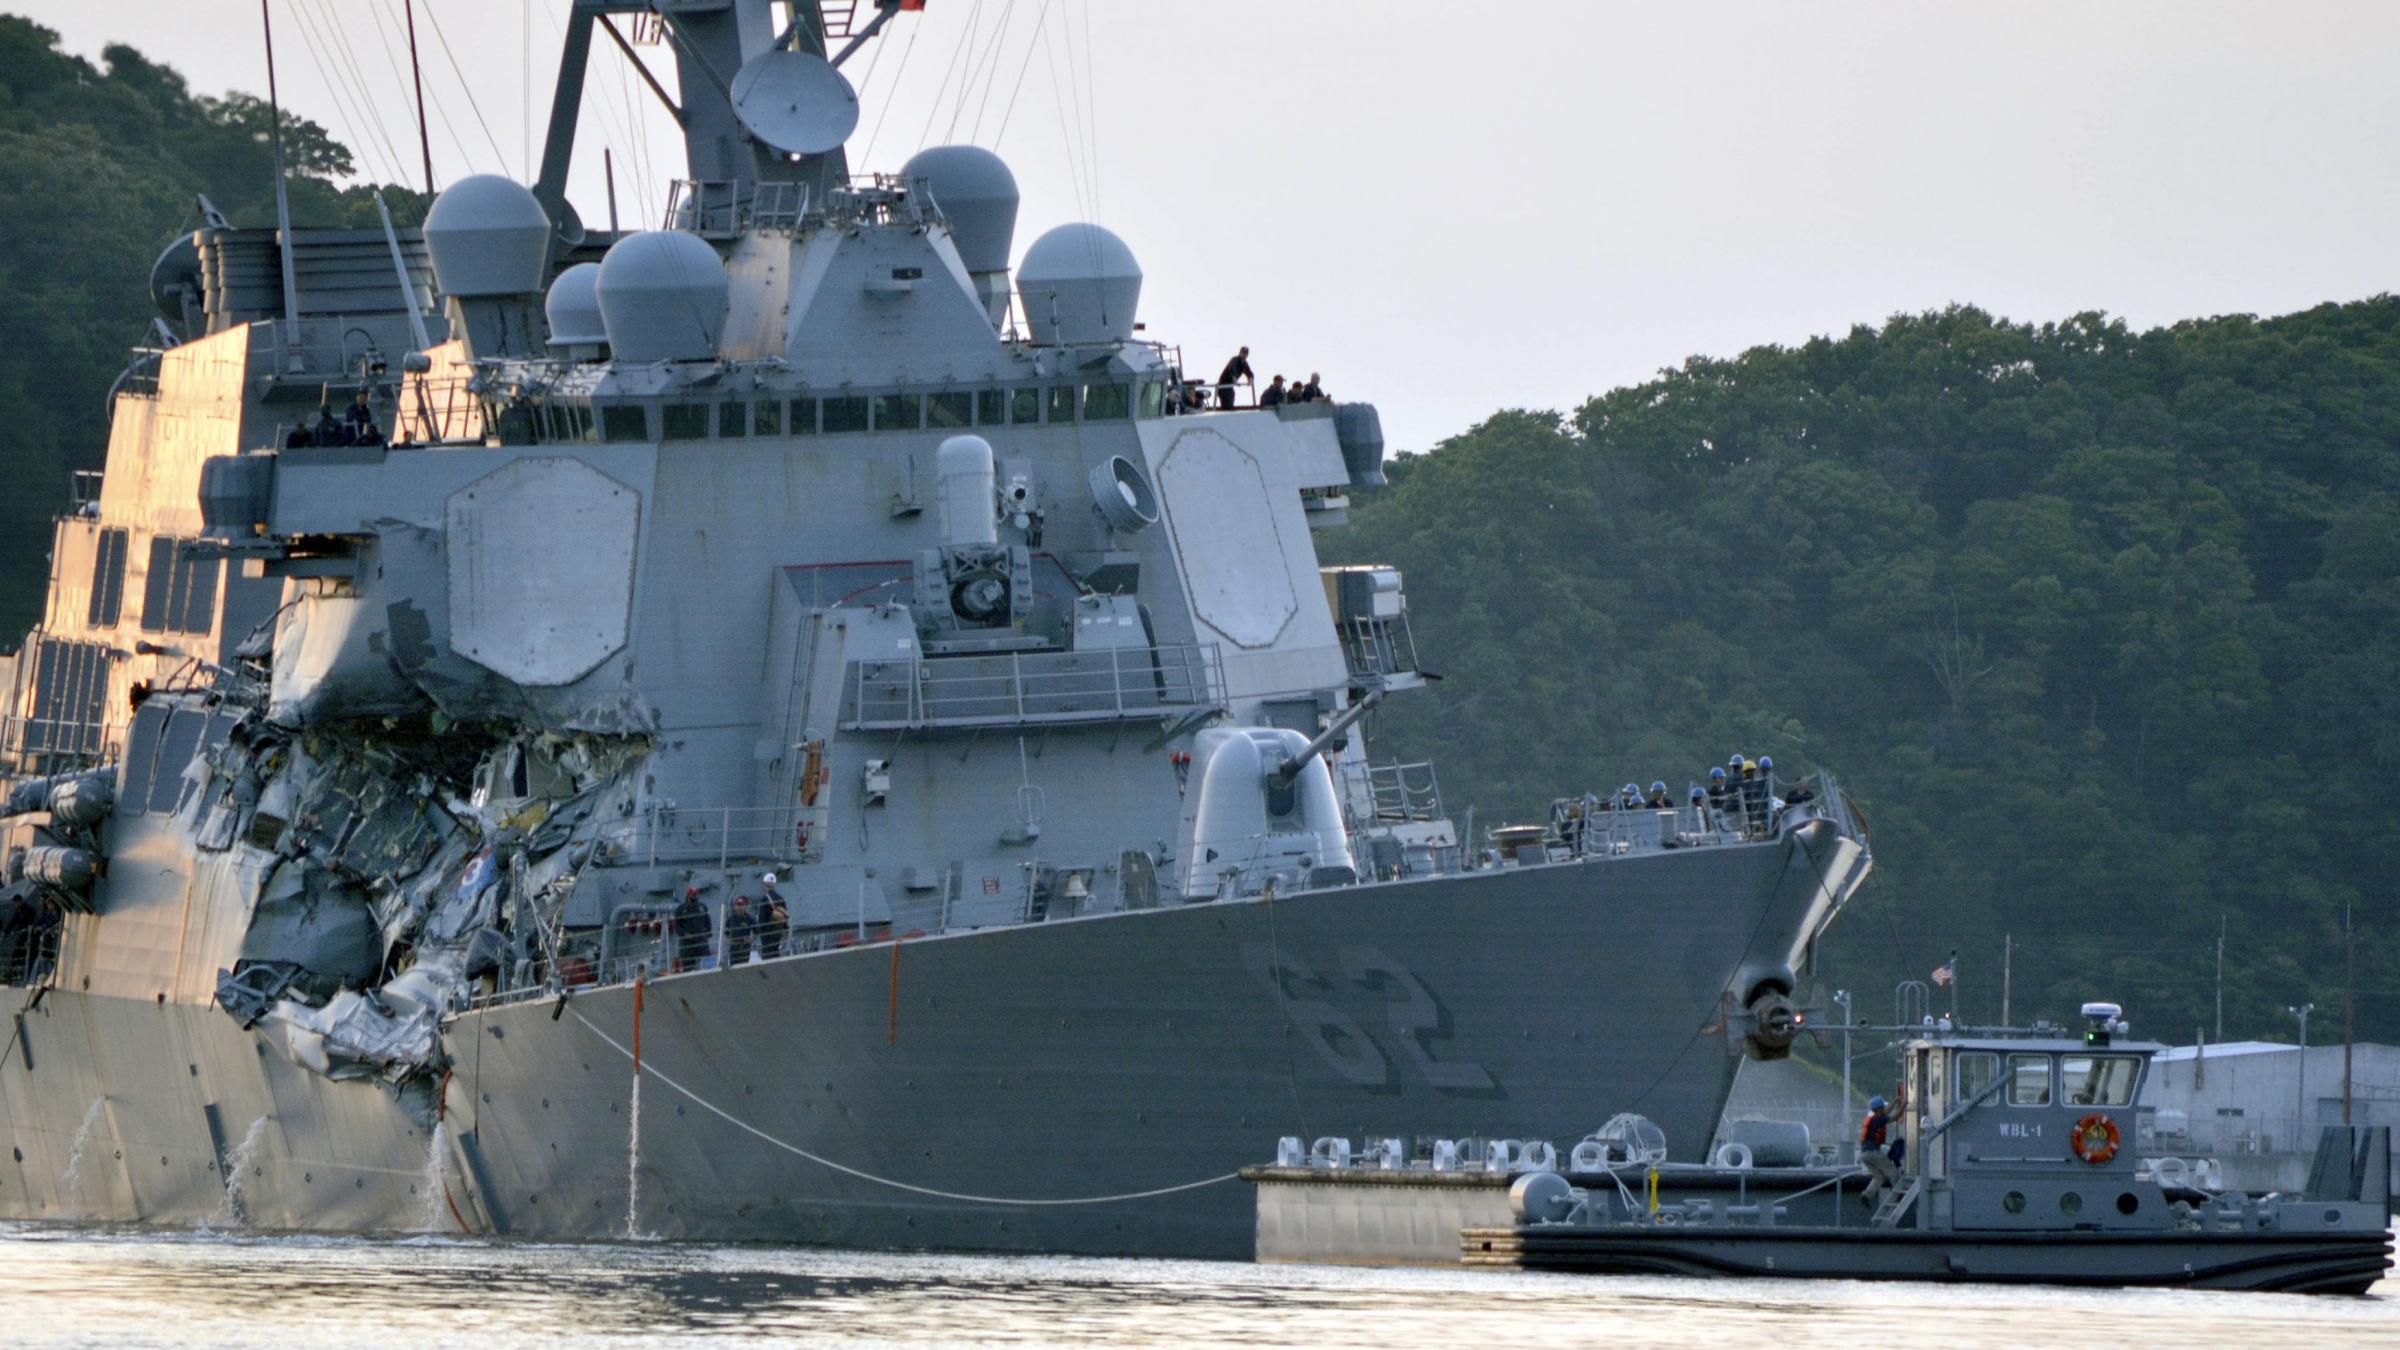 Bodies found on 'ripped' U.S. destroyer